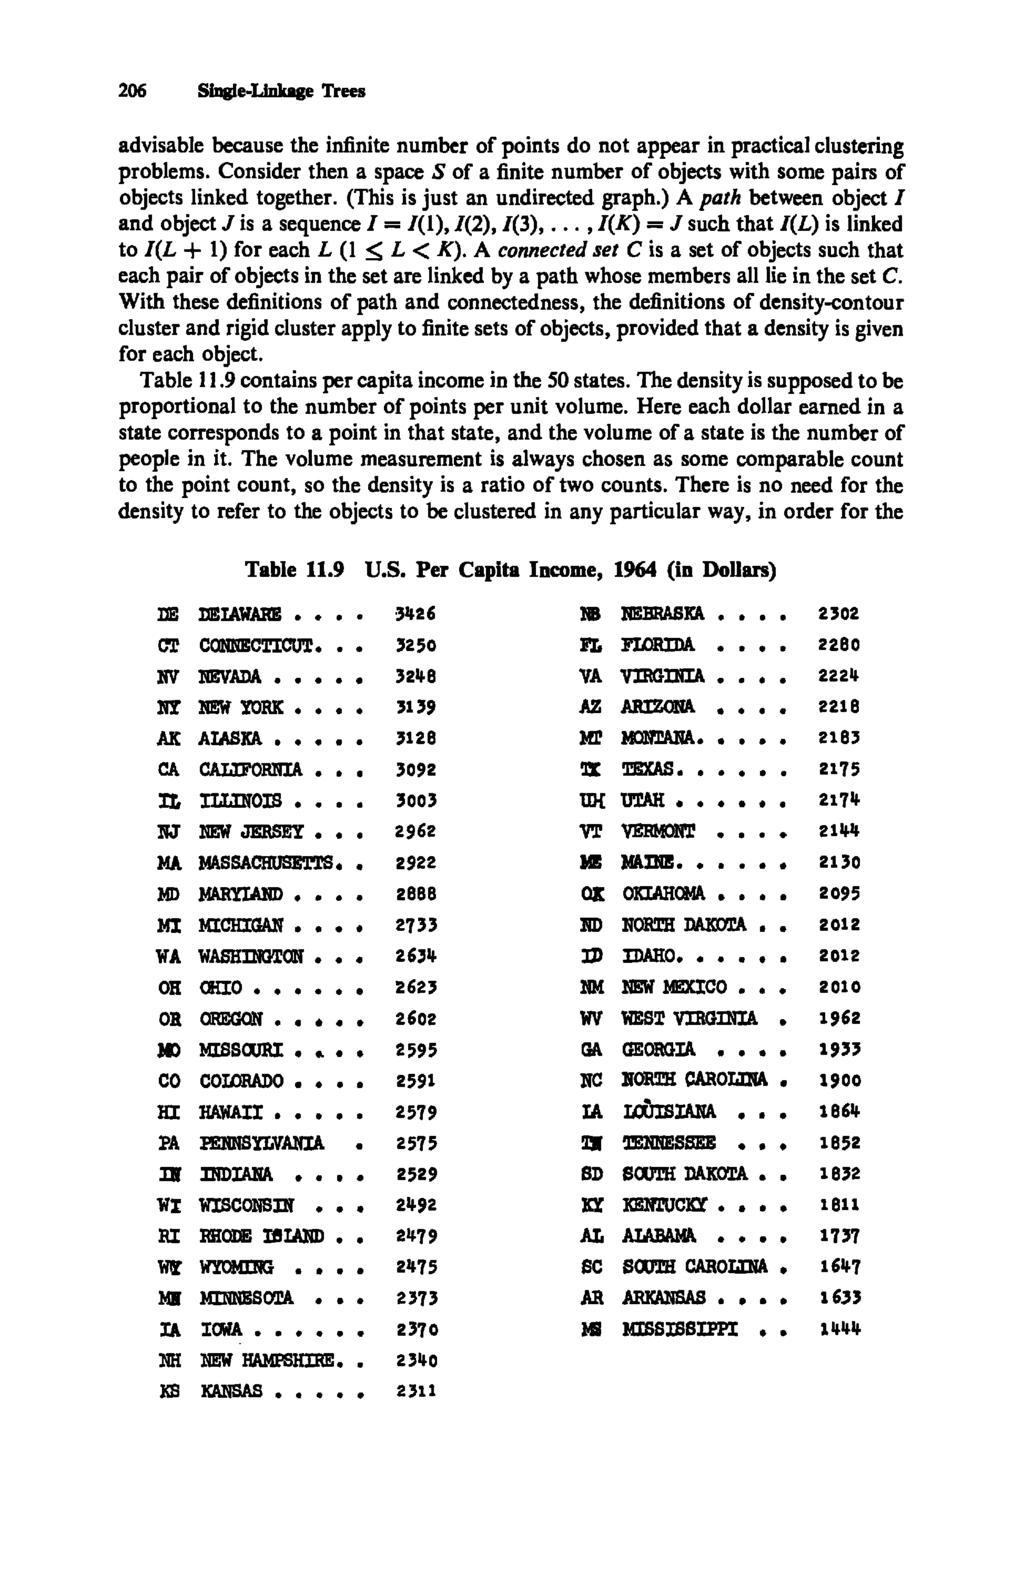 Wiley Series In Probability And Mathematical Statistics Established The Interior Of Aa111 Shows Four El 84 Power Output Tubes By Walter A Shewhart Samuel S Wilks Editors Ralph Pdf